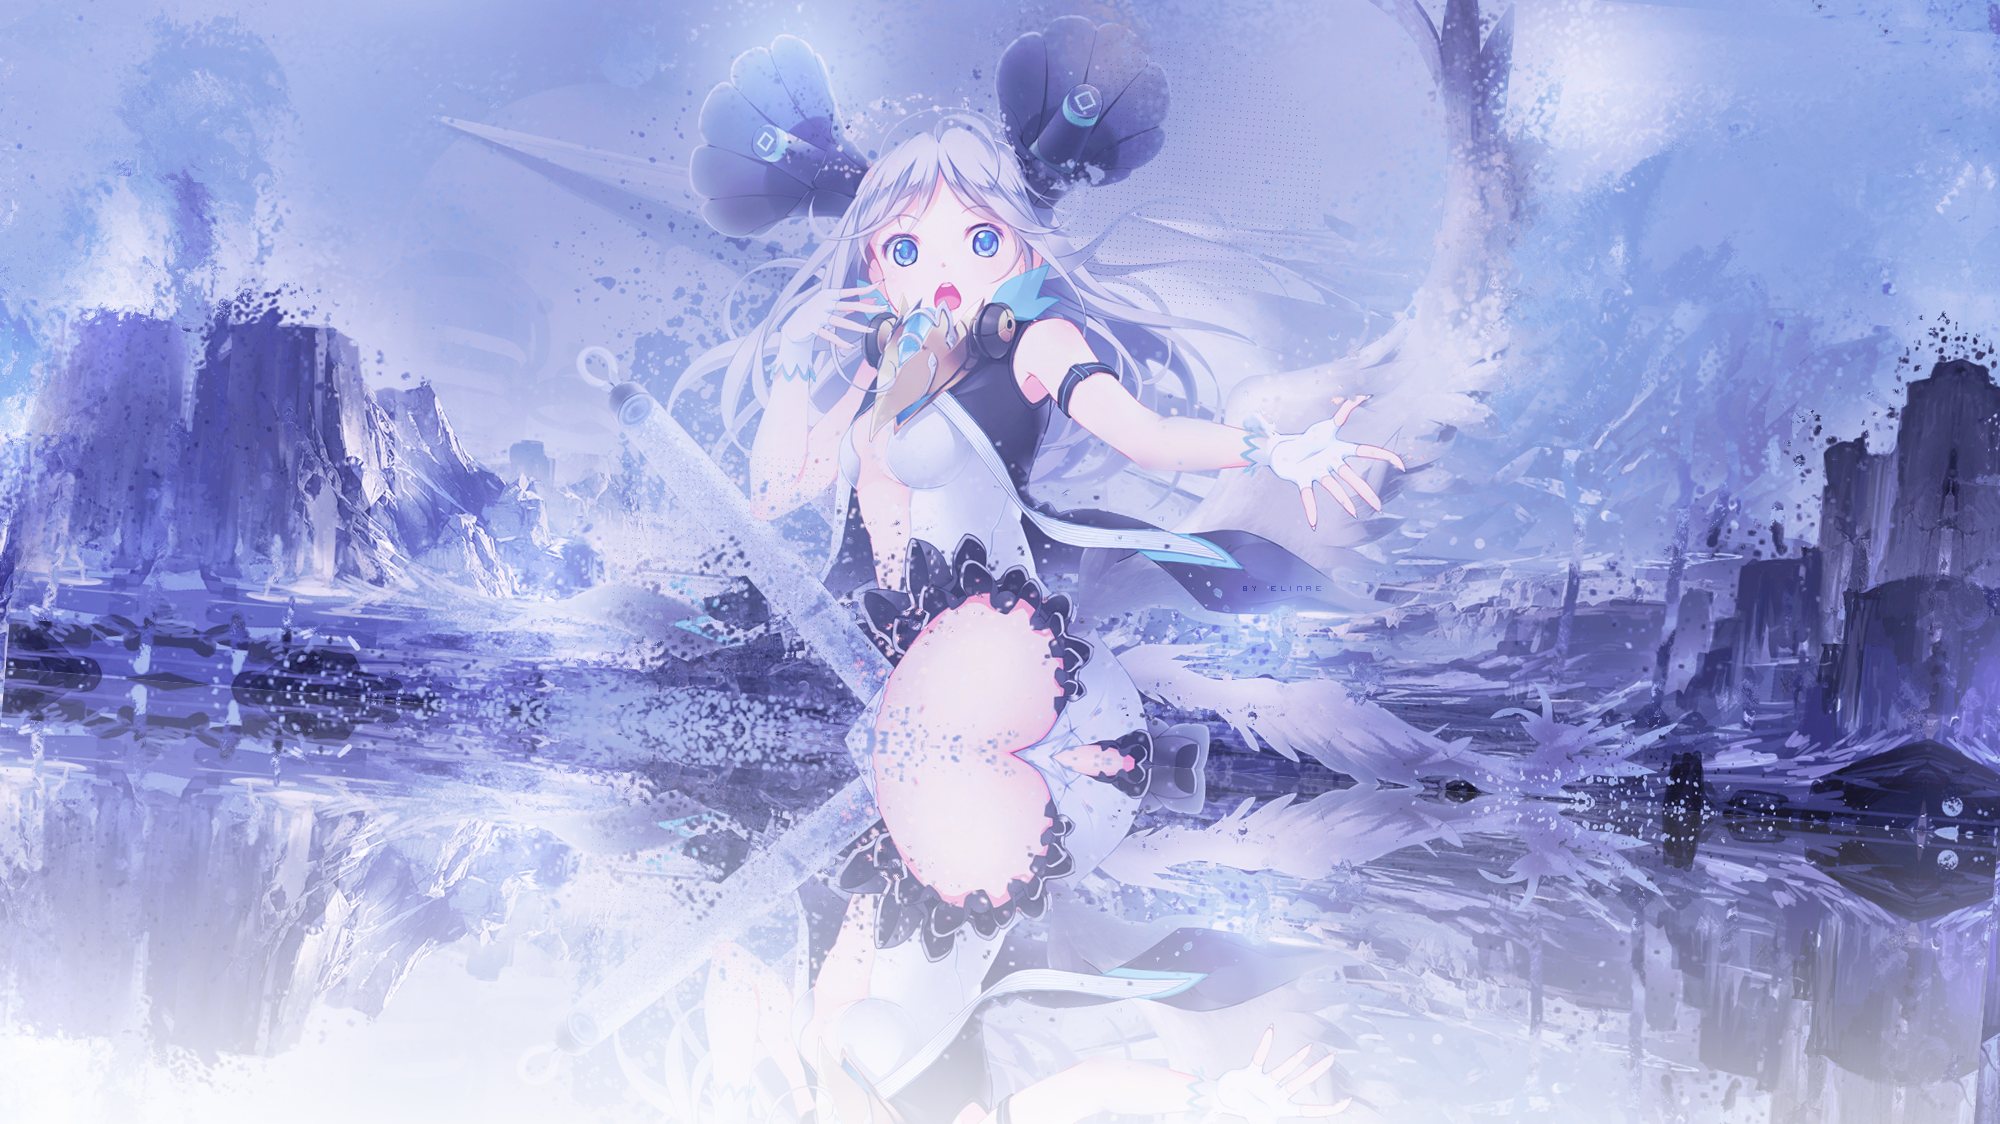 Wallpaper fille/ange